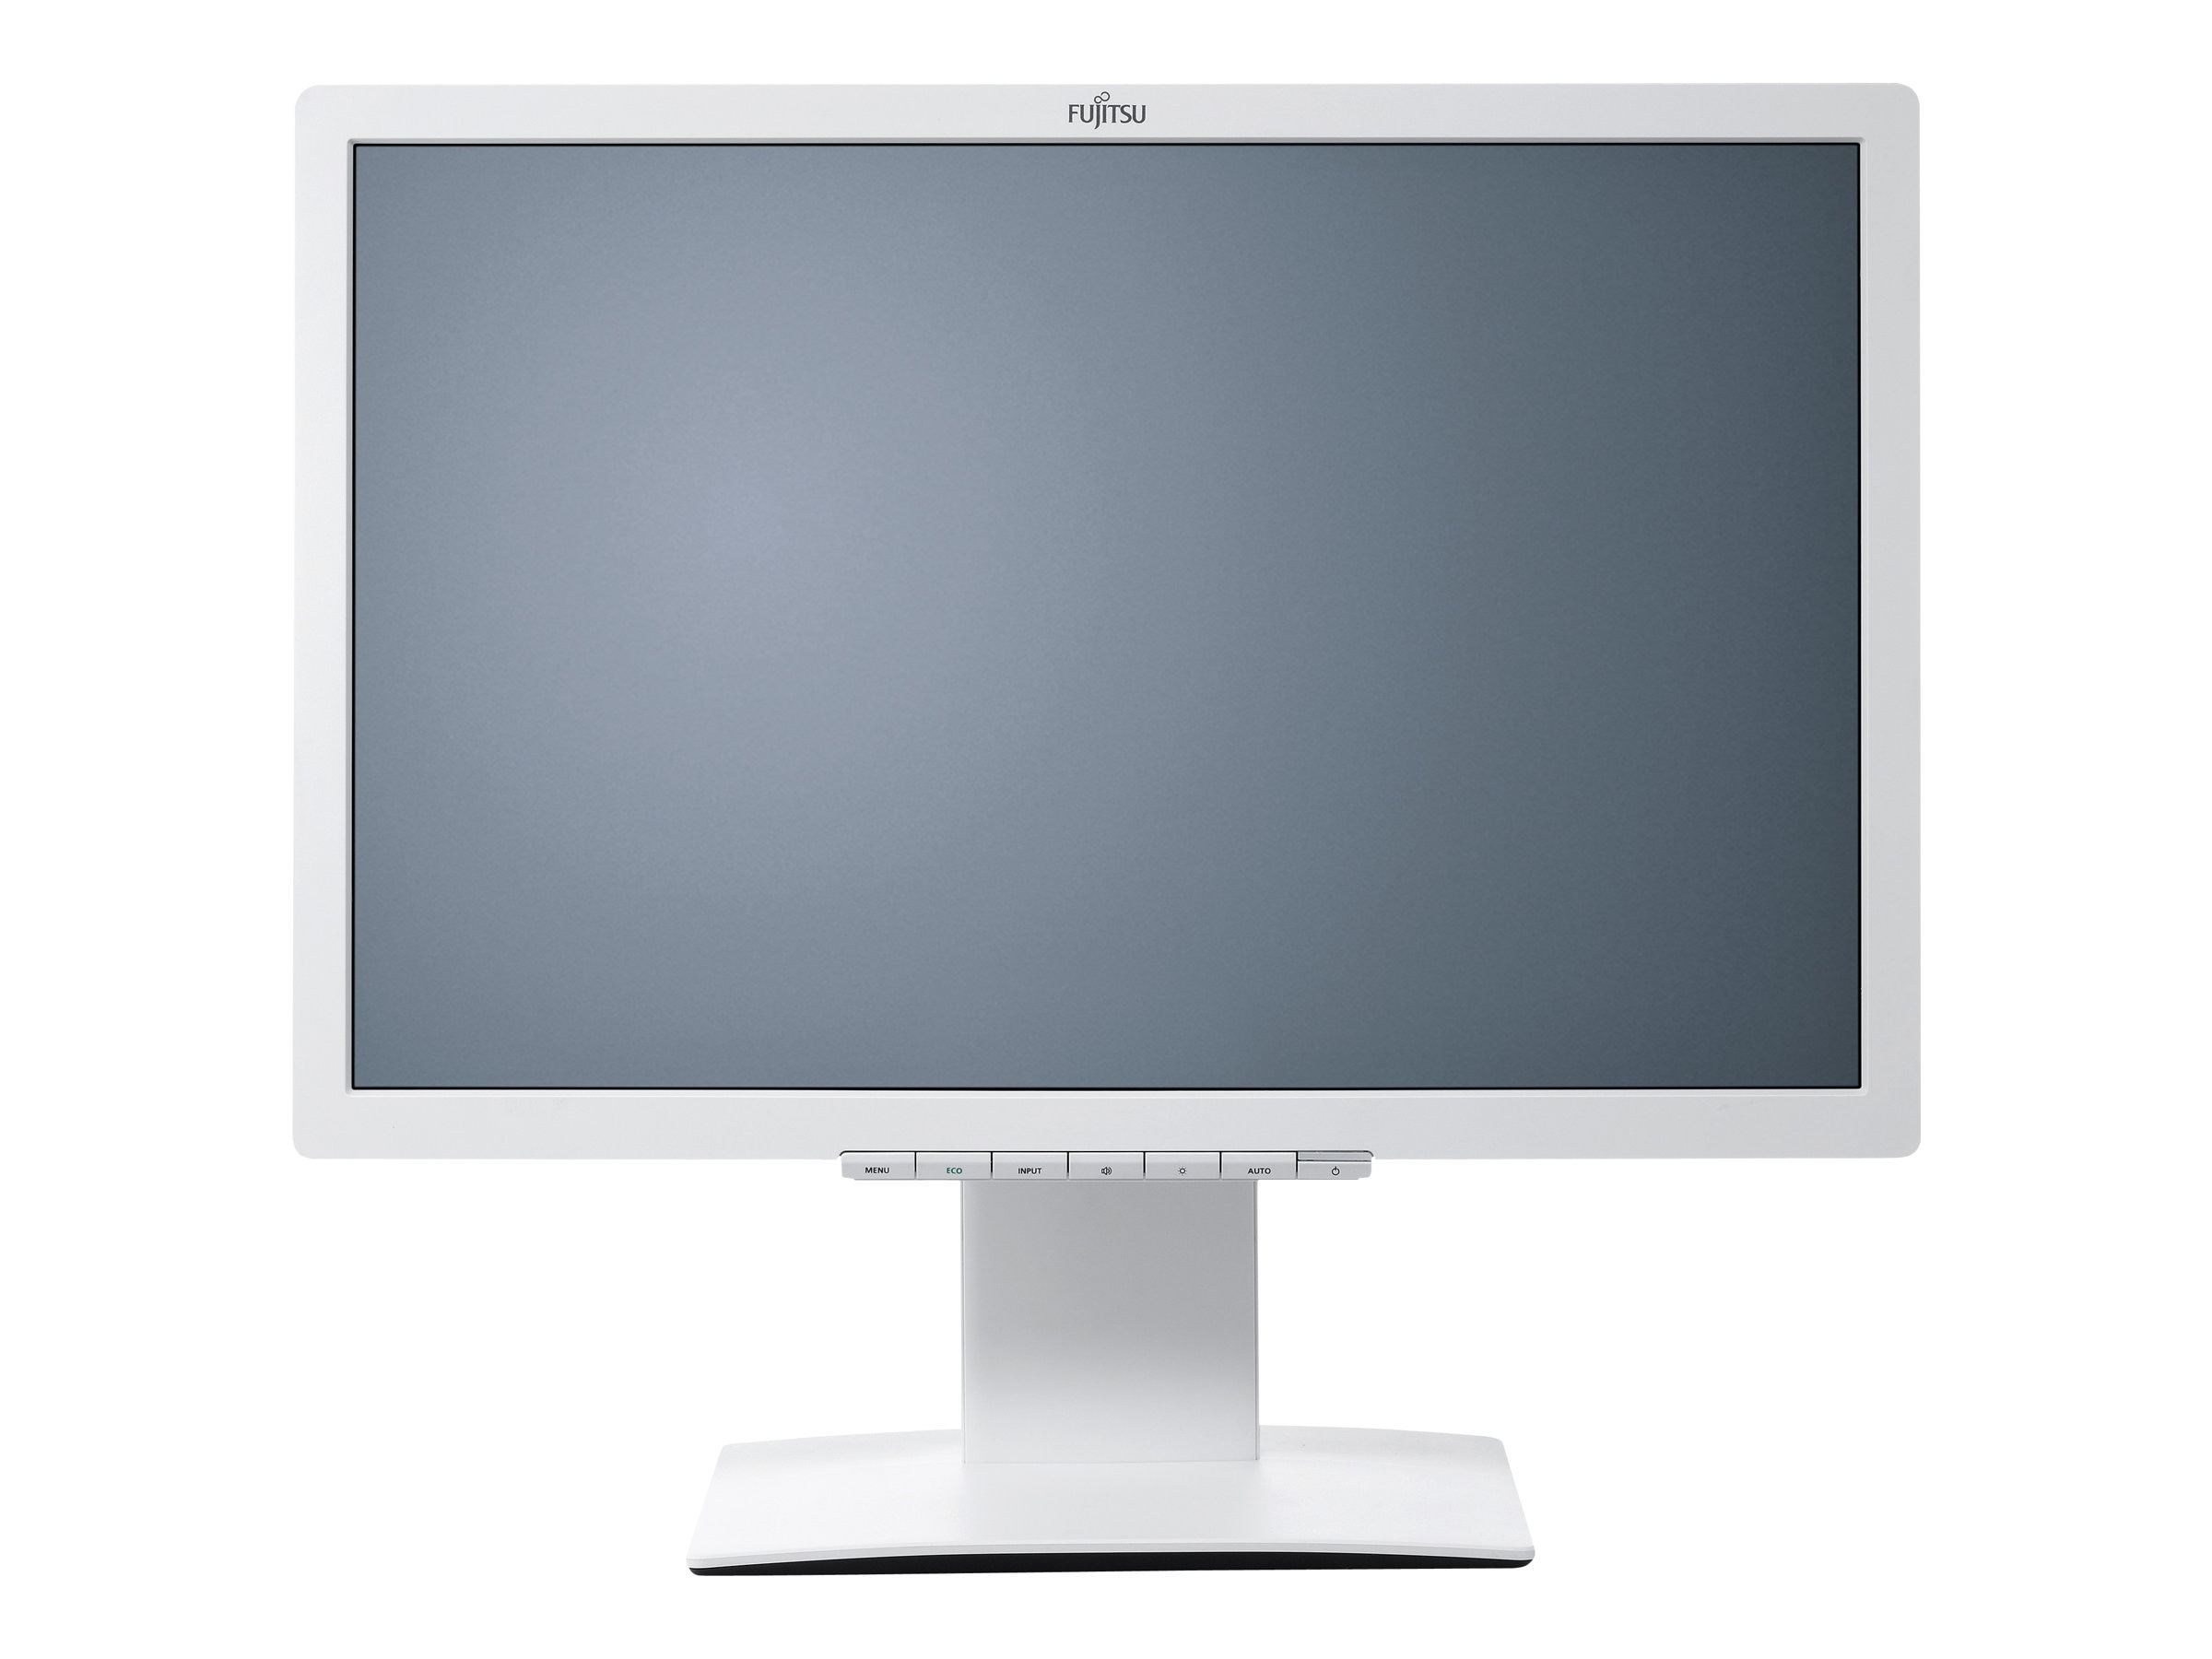 Fujitsu 22 B22W-7 LED-LCD Display, White, S26361-K1472-V140, 18016422, Monitors - LED-LCD